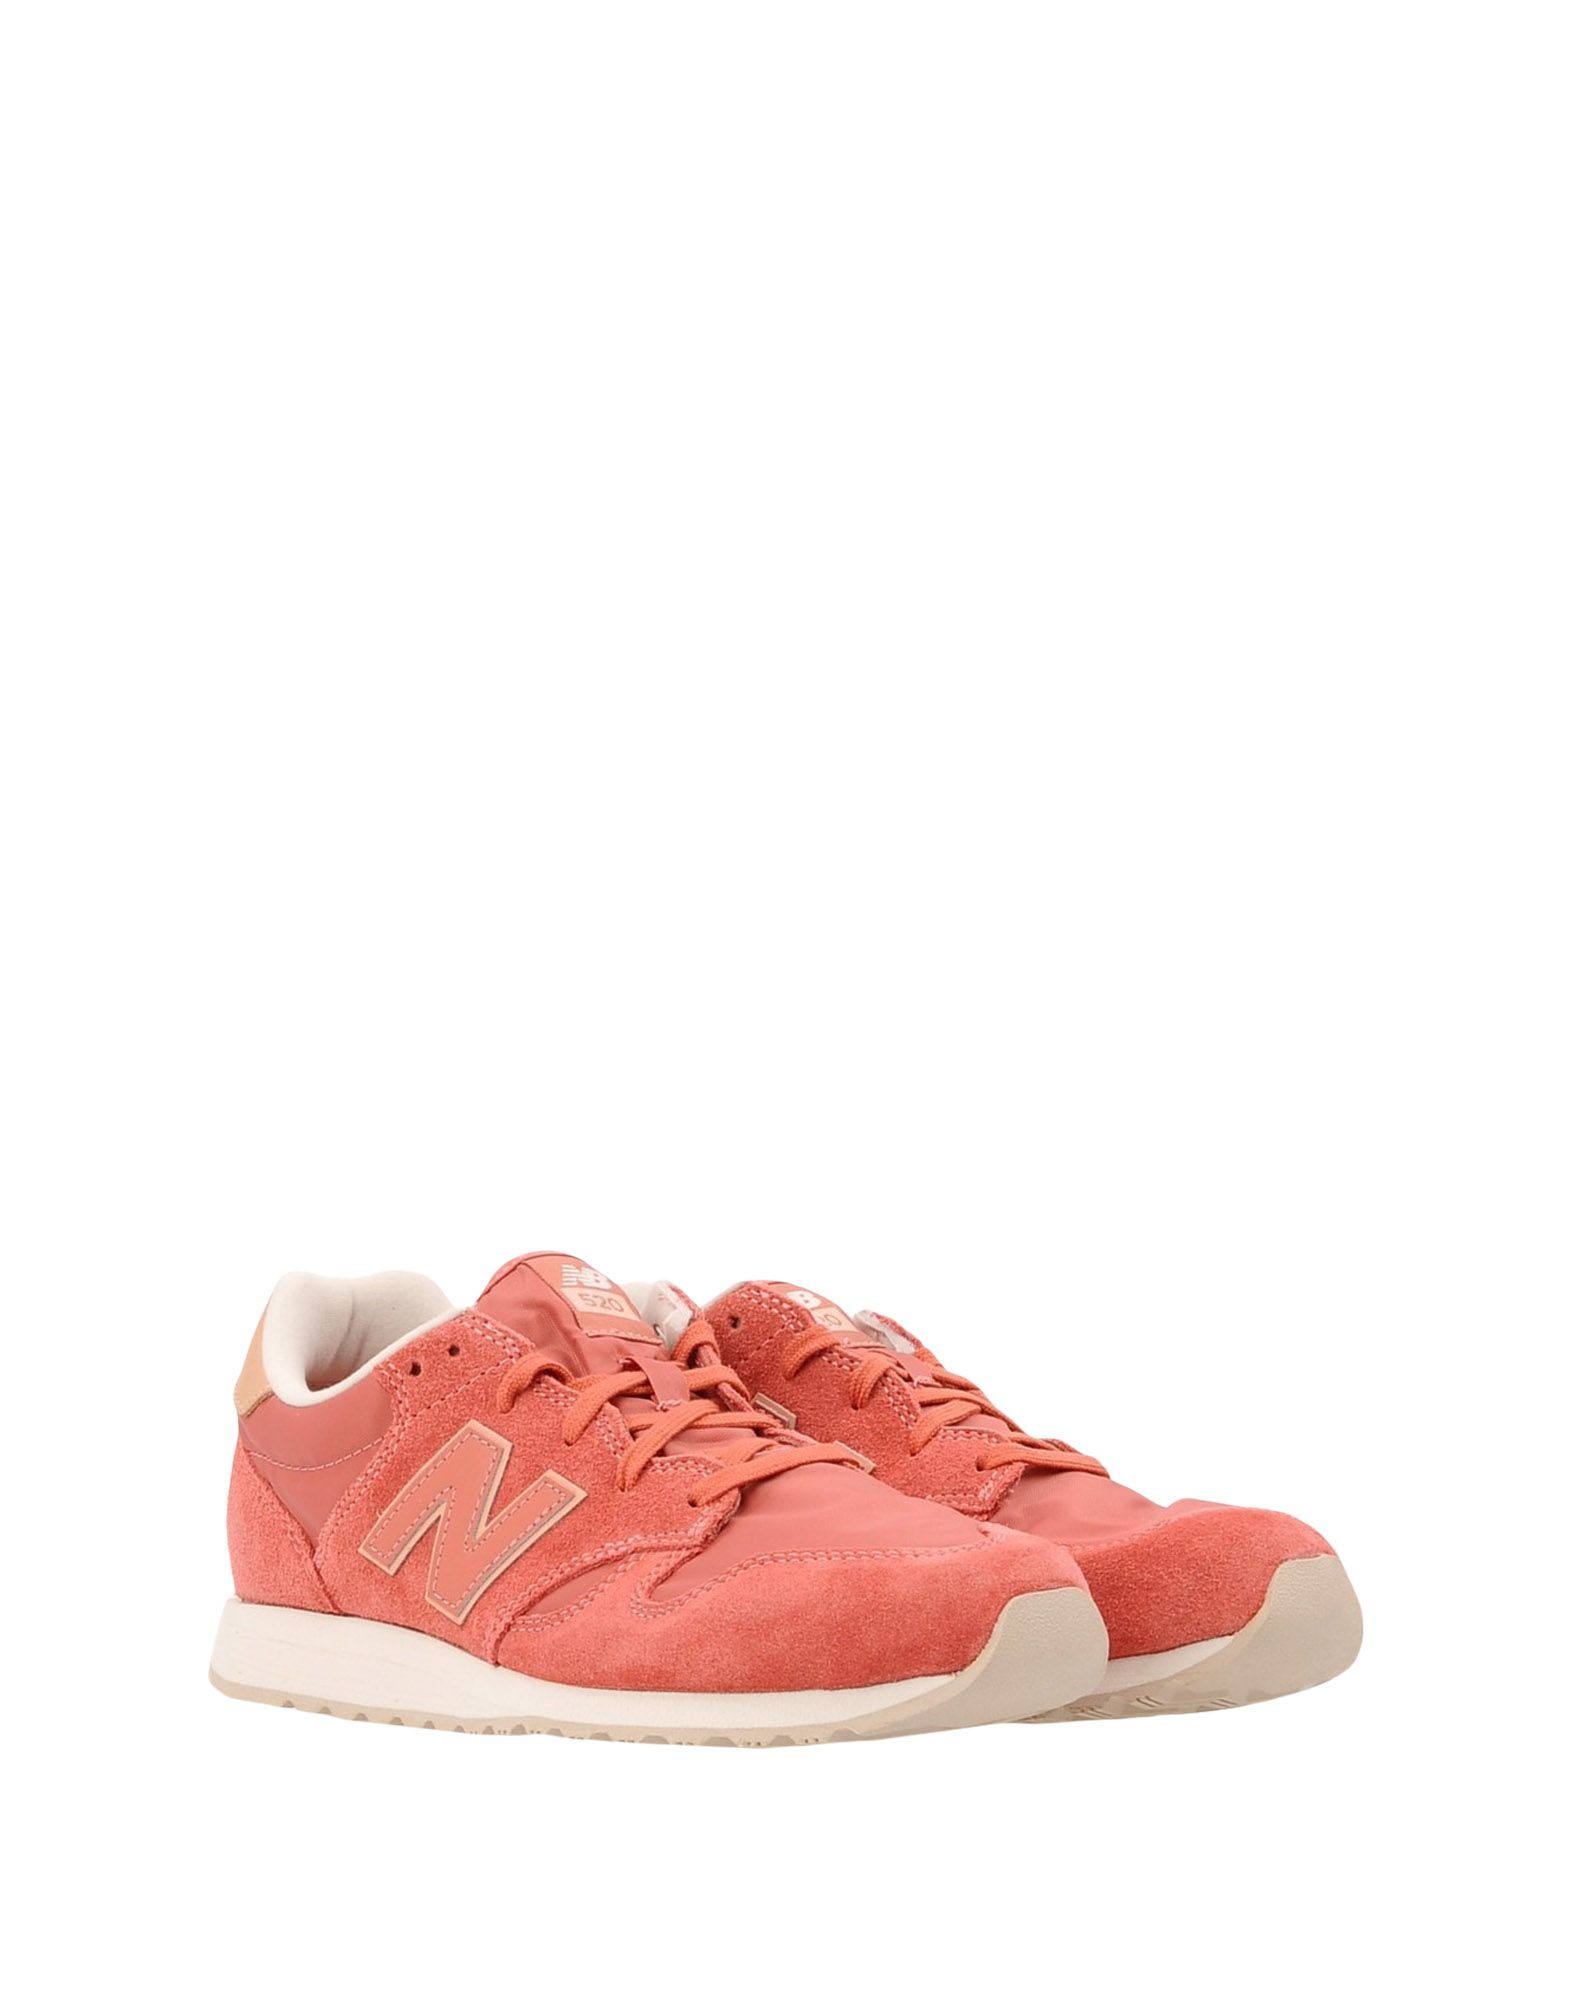 Sneakers New Balance 520 Vintage - Femme - Sneakers New Balance sur